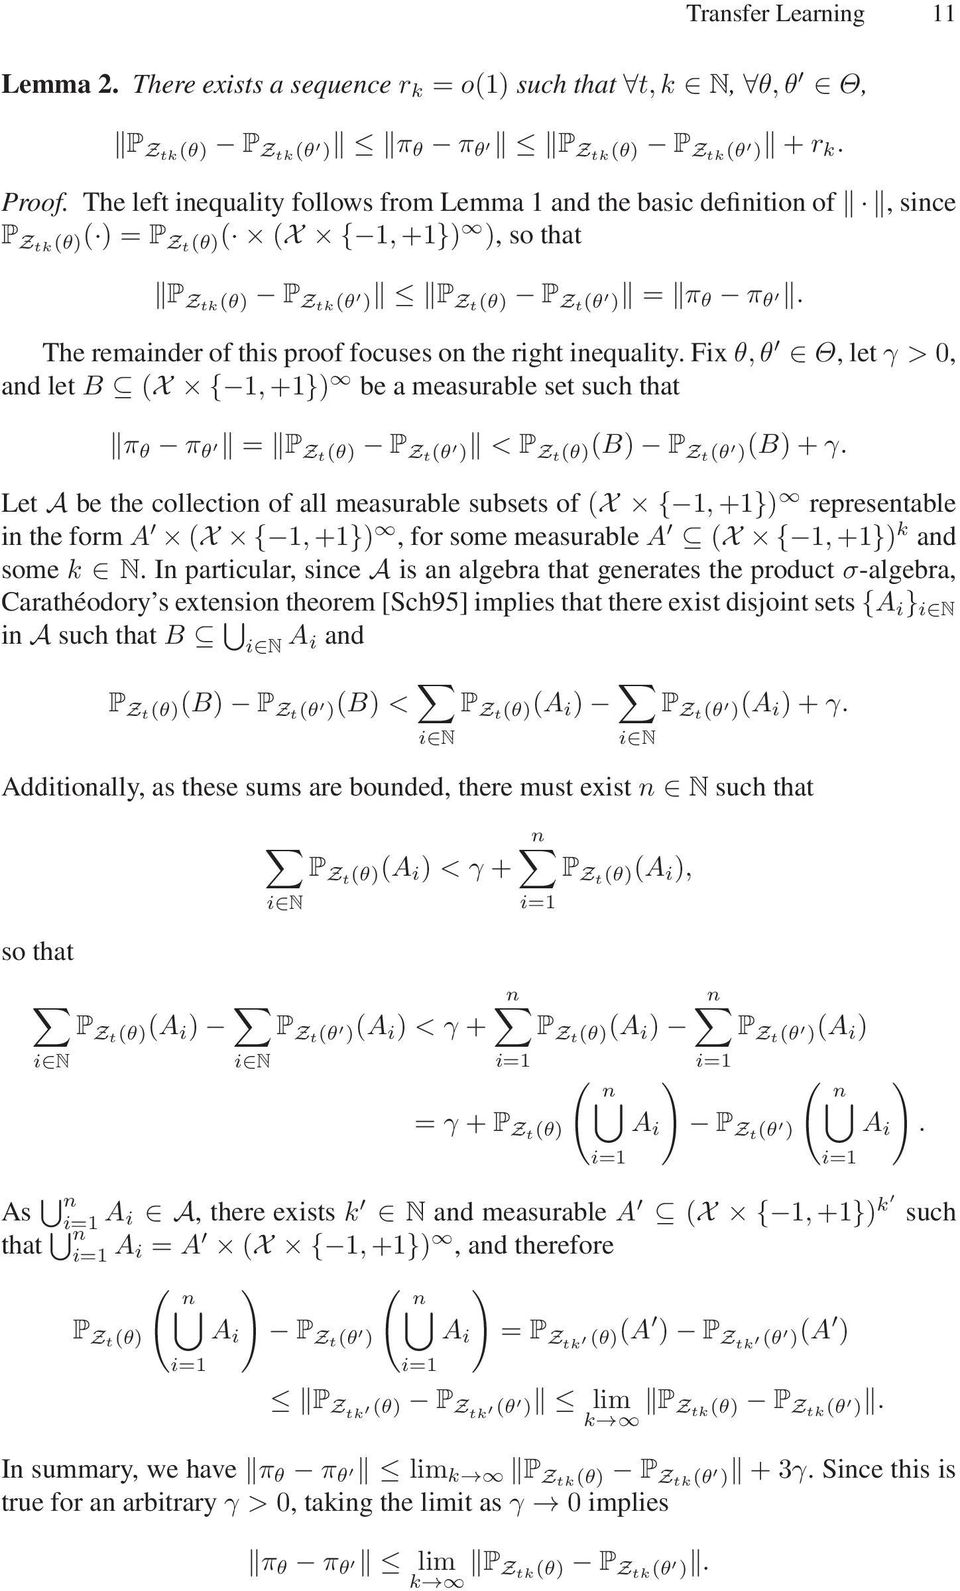 The remainder of this proof focuses on the right inequality. Fixθ,θ Θ, letγ > 0, and let B (X { 1,+1}) be a measurable set such that π θ π θ = P Zt(θ) P Zt(θ ) < P Zt(θ)(B) P Zt(θ )(B)+γ.